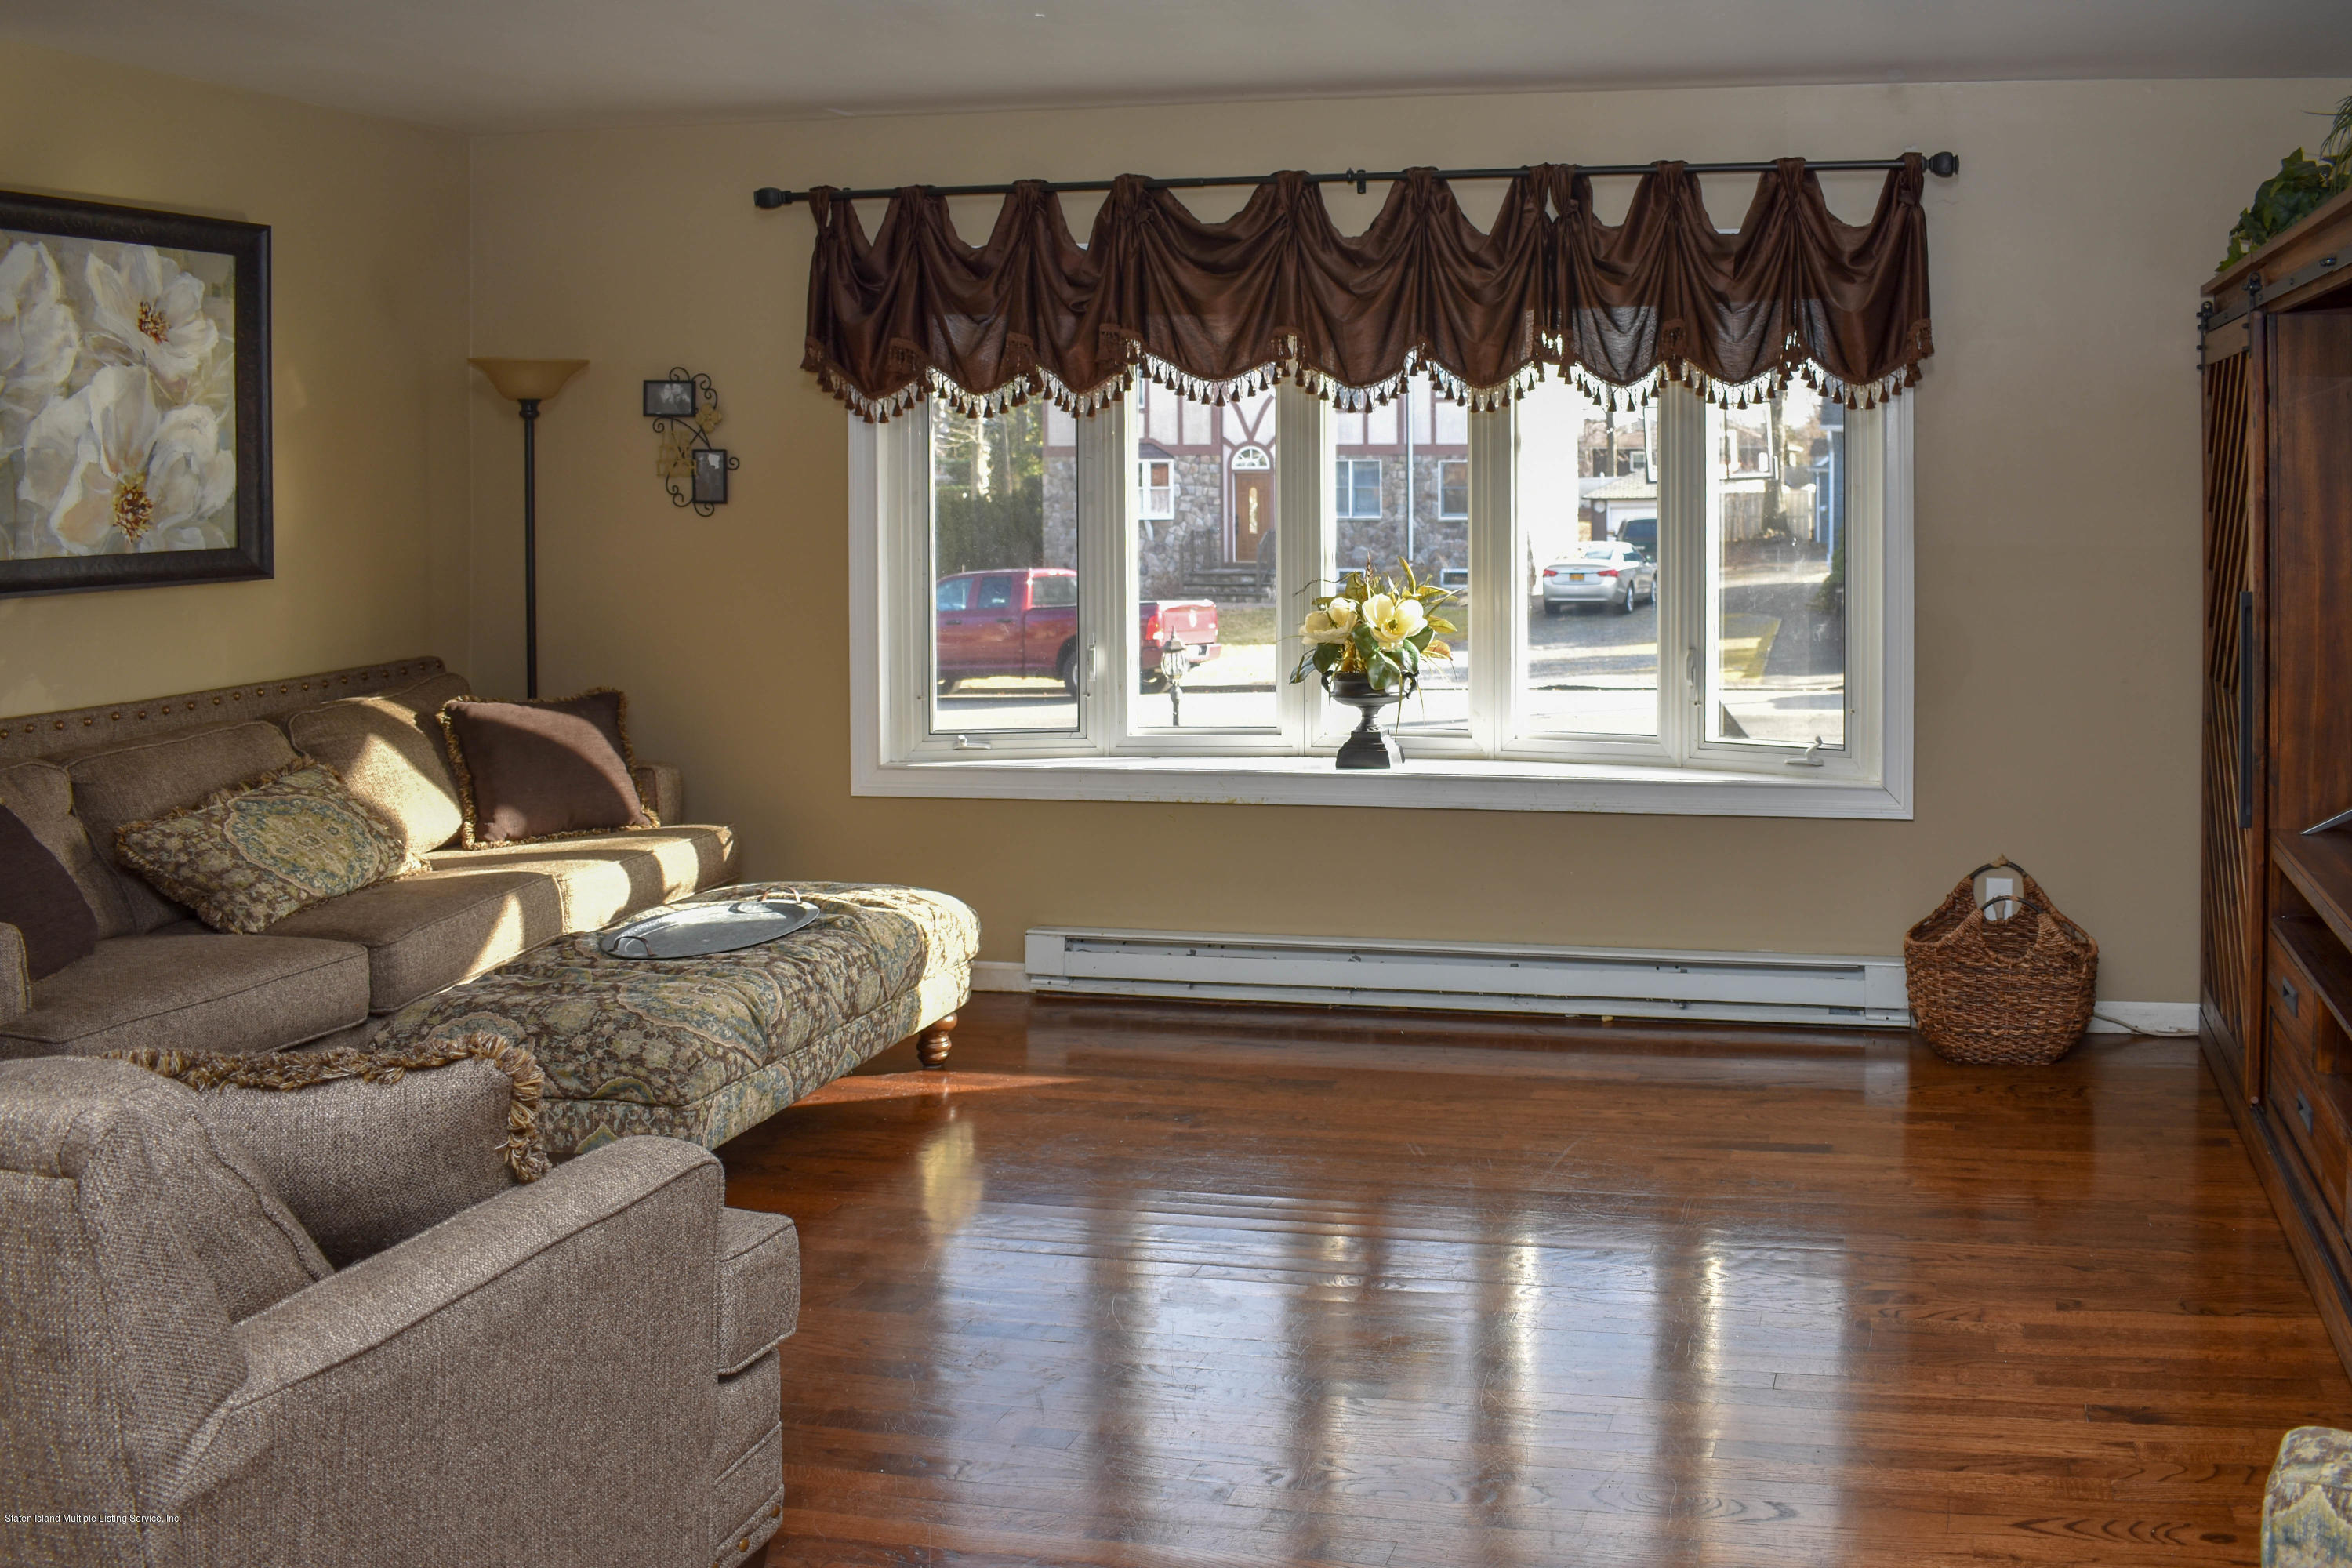 Single Family - Detached 71 Excelsior Avenue  Staten Island, NY 10309, MLS-1126131-7